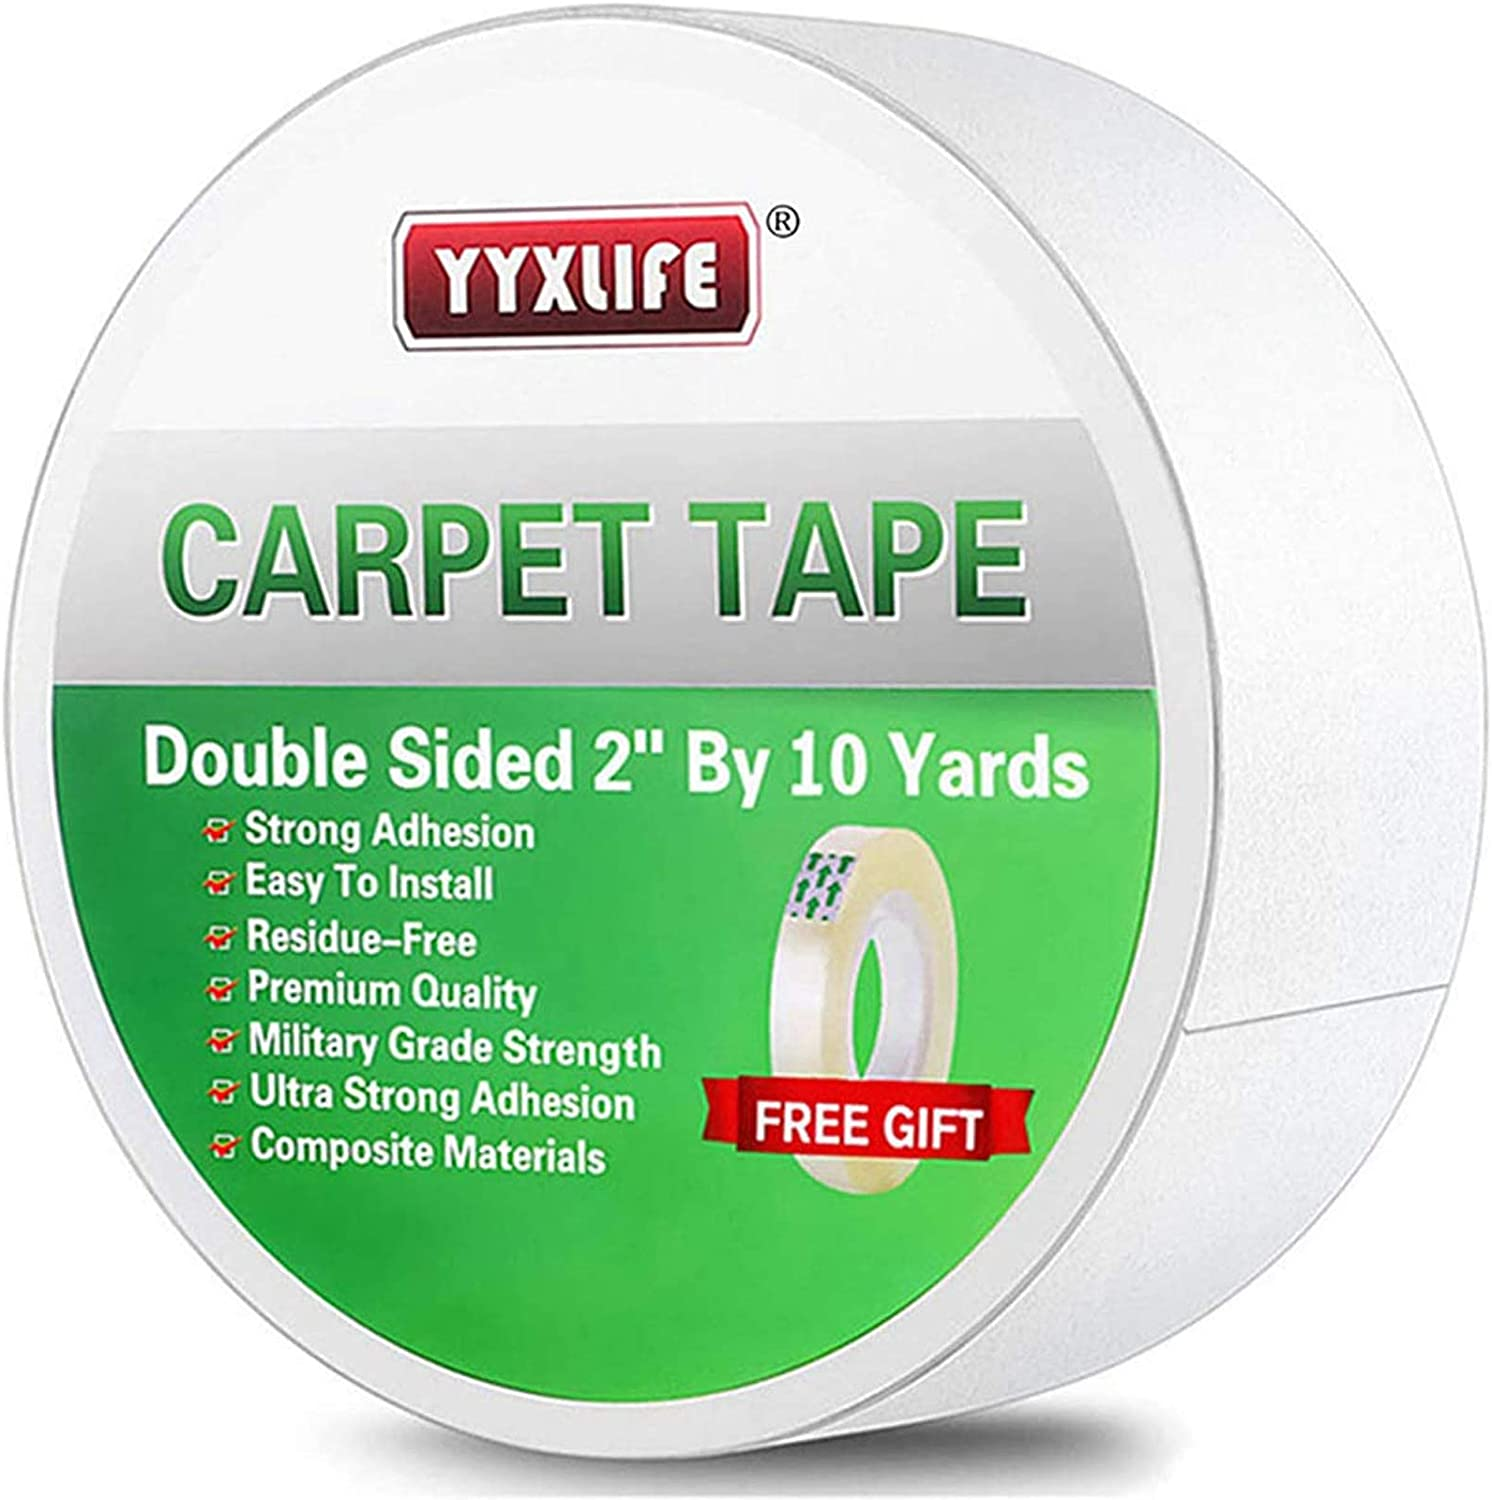 YYXLIFE Double Sided Carpet Tape for Area Rugs Carpet Adhesive Rug Gripper Removable Multi-Purpose Rug Tape Cloth for Hardwood Floors, Outdoor Rugs, Carpets.Heavy Duty Sticky Tape, 2Inch x 10 Yards, White - -